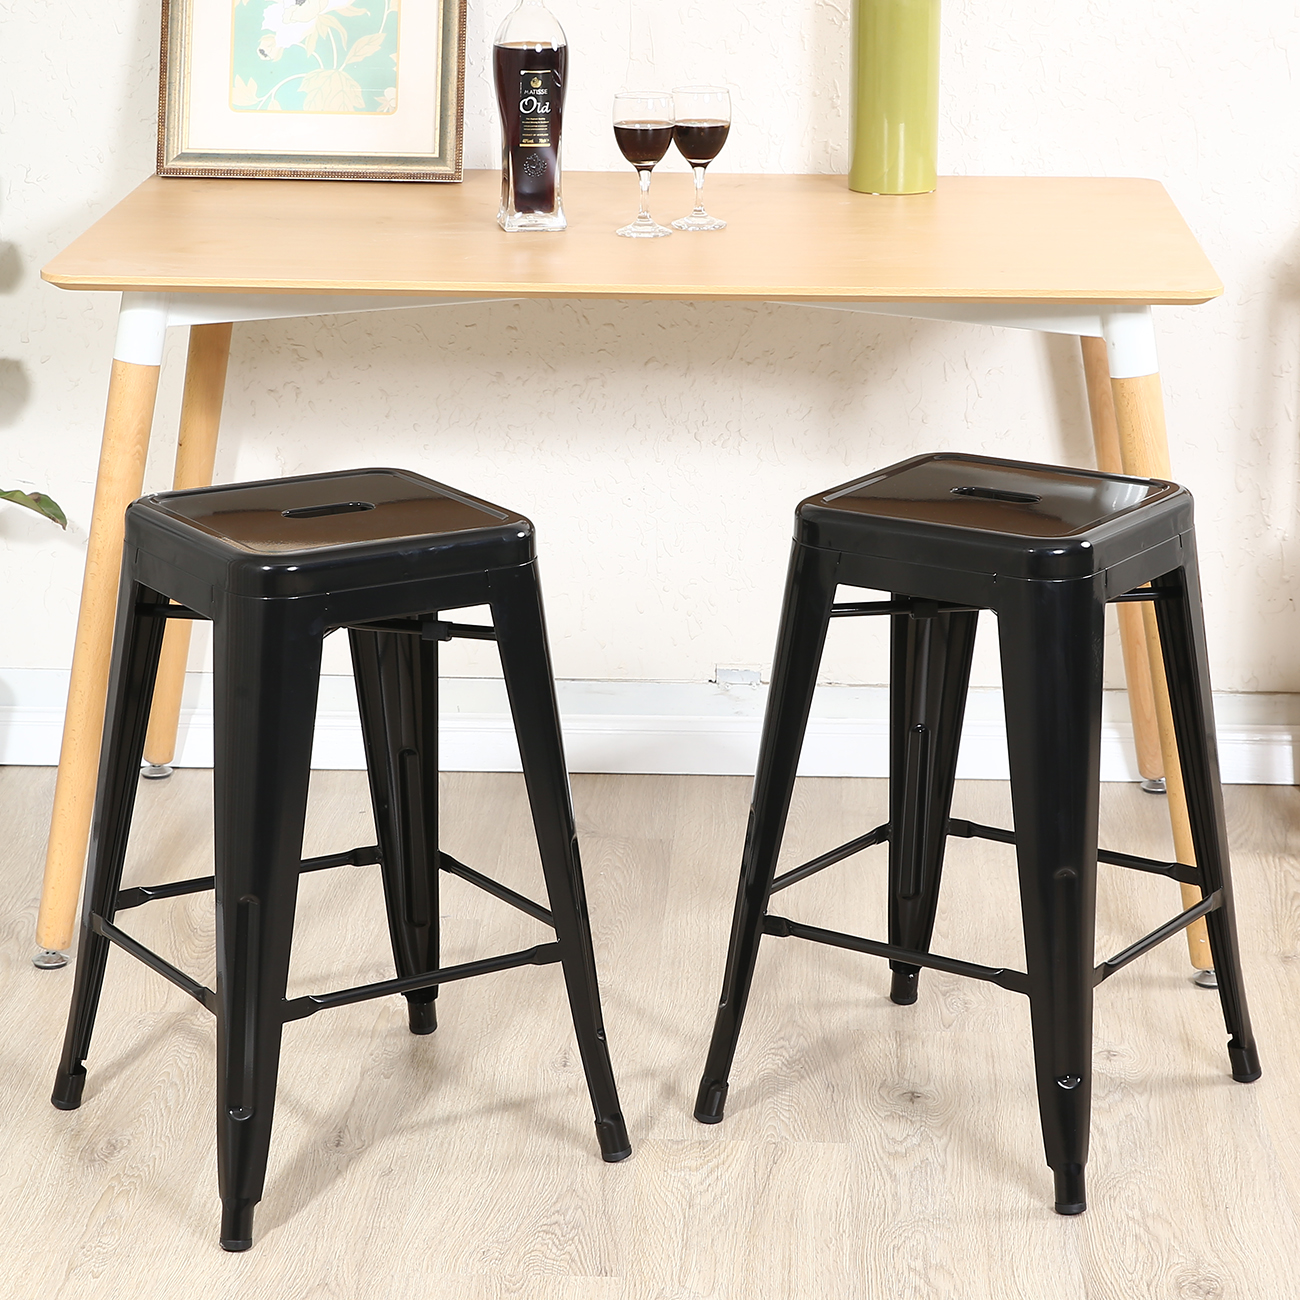 Set Of 2 Metal Bar Stool Counter Height Home 24 Quot 26 Quot 30